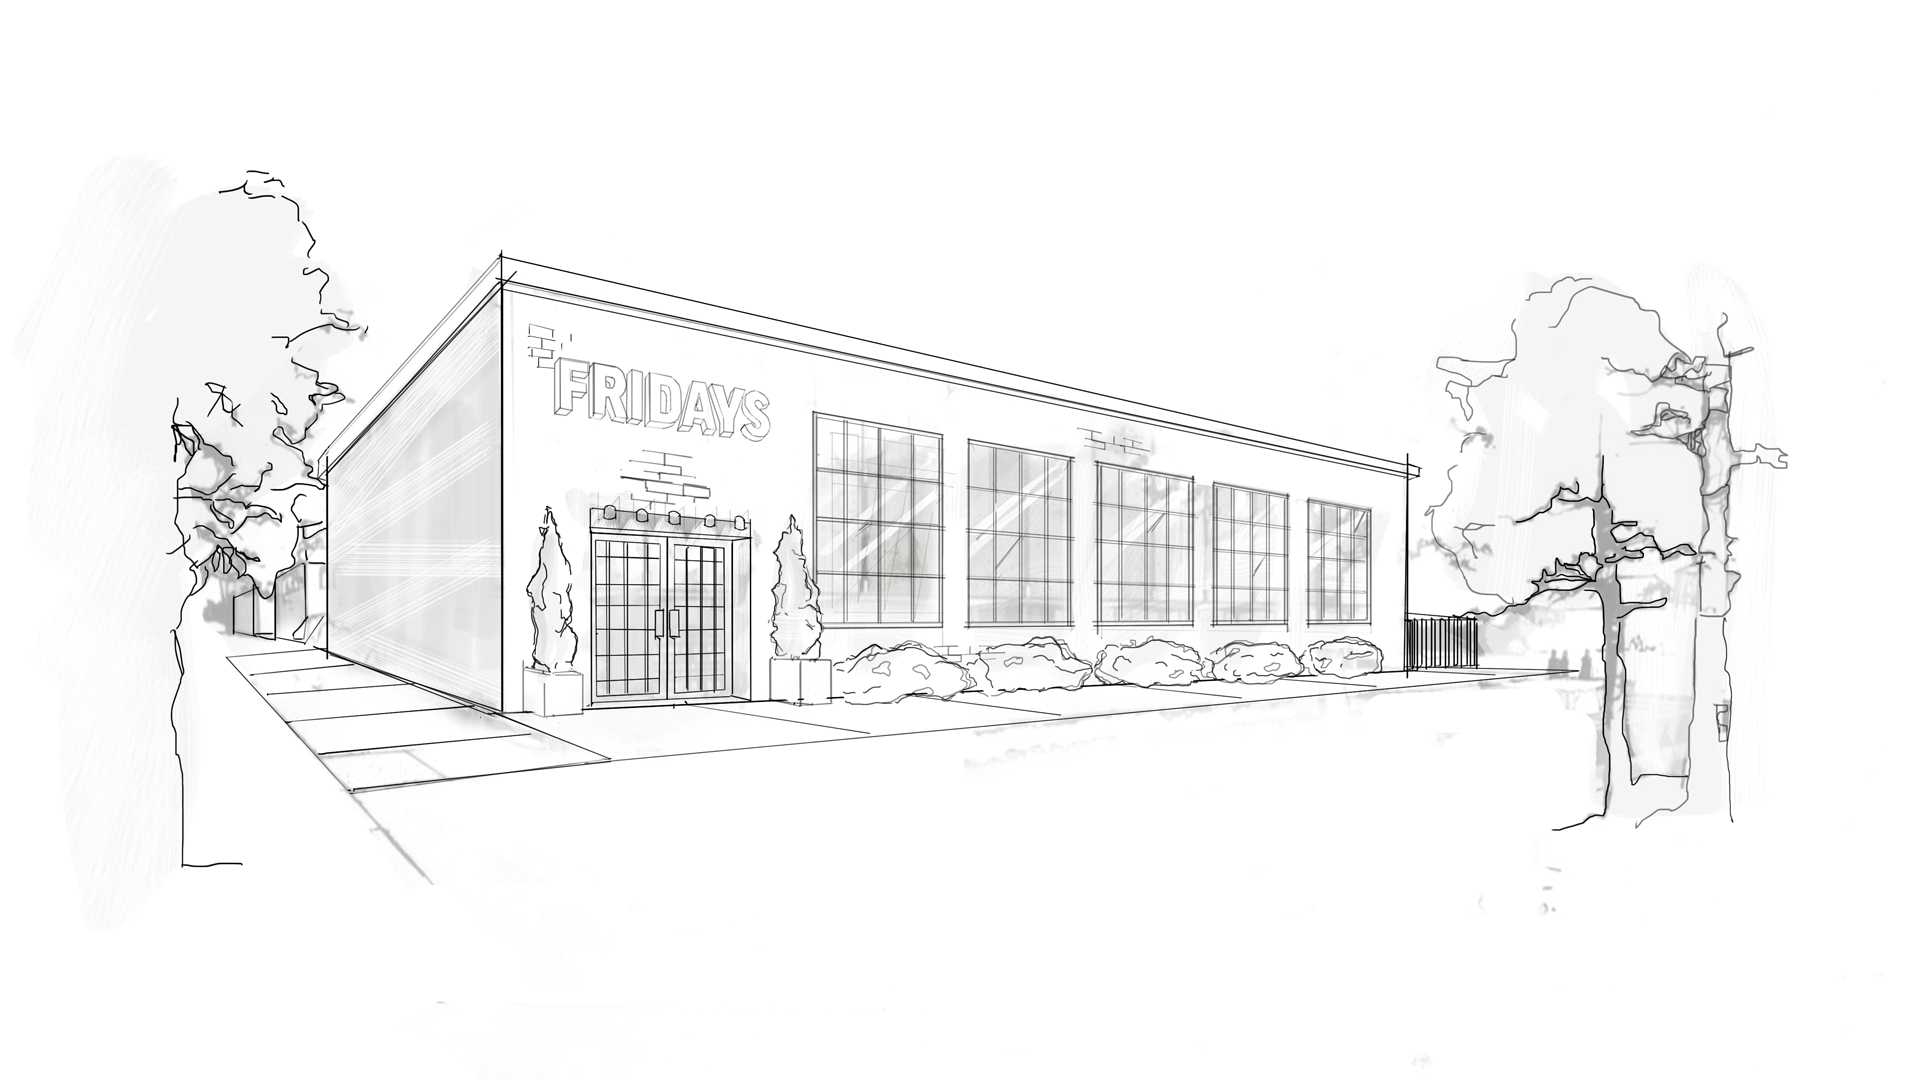 TGIF_Exterior-Sketch_Edit-copy